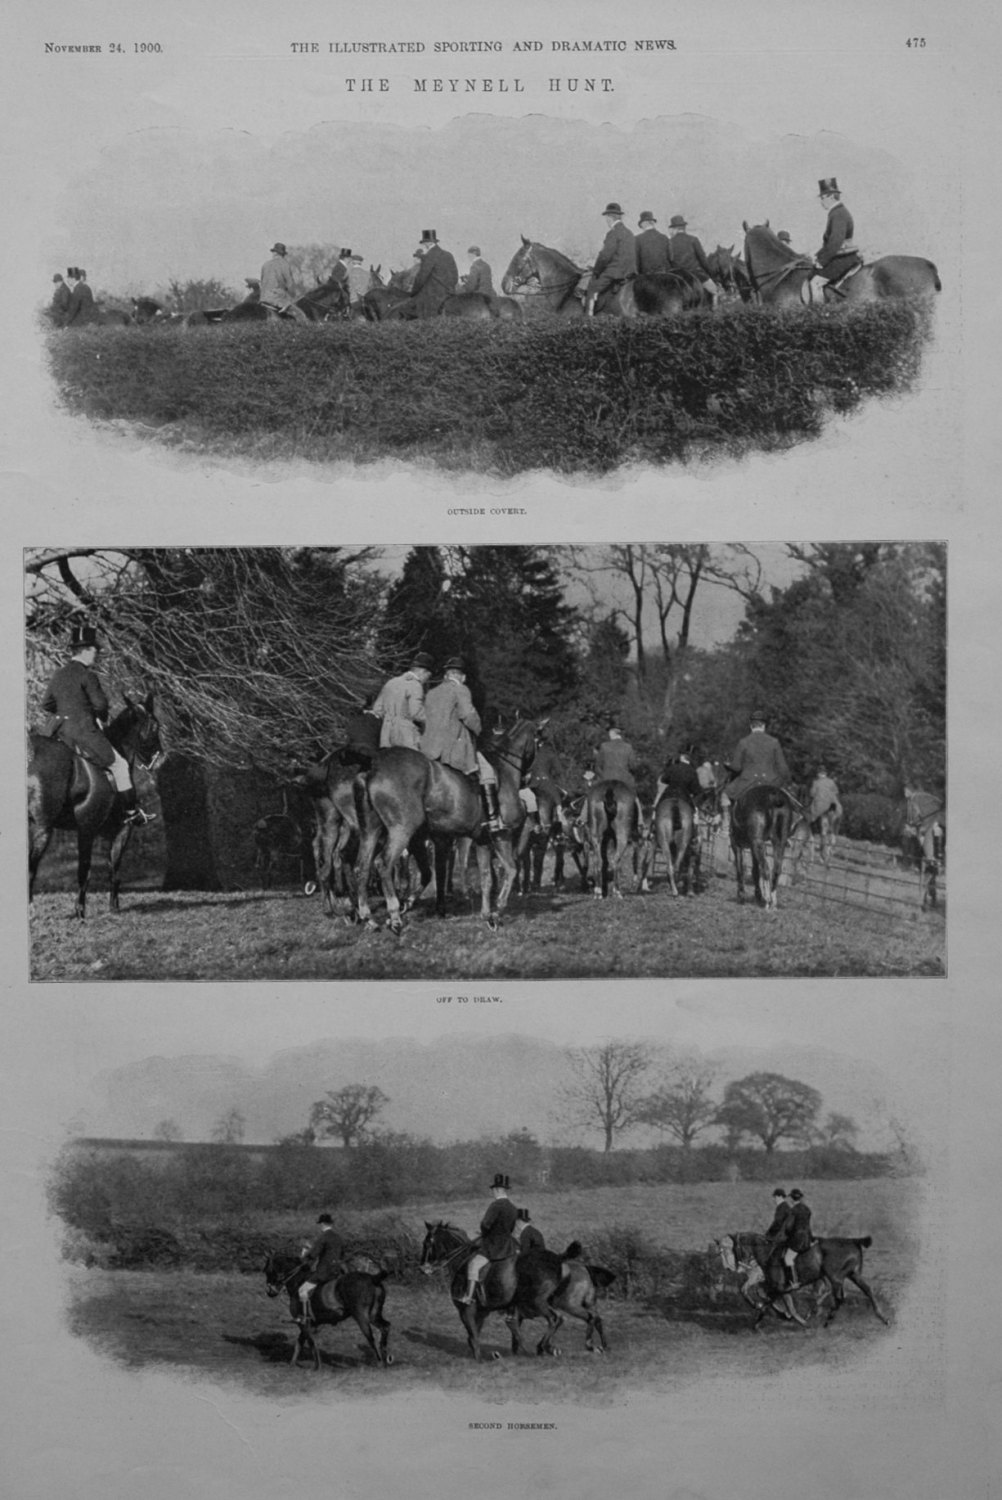 The Meynell Hunt. 1900